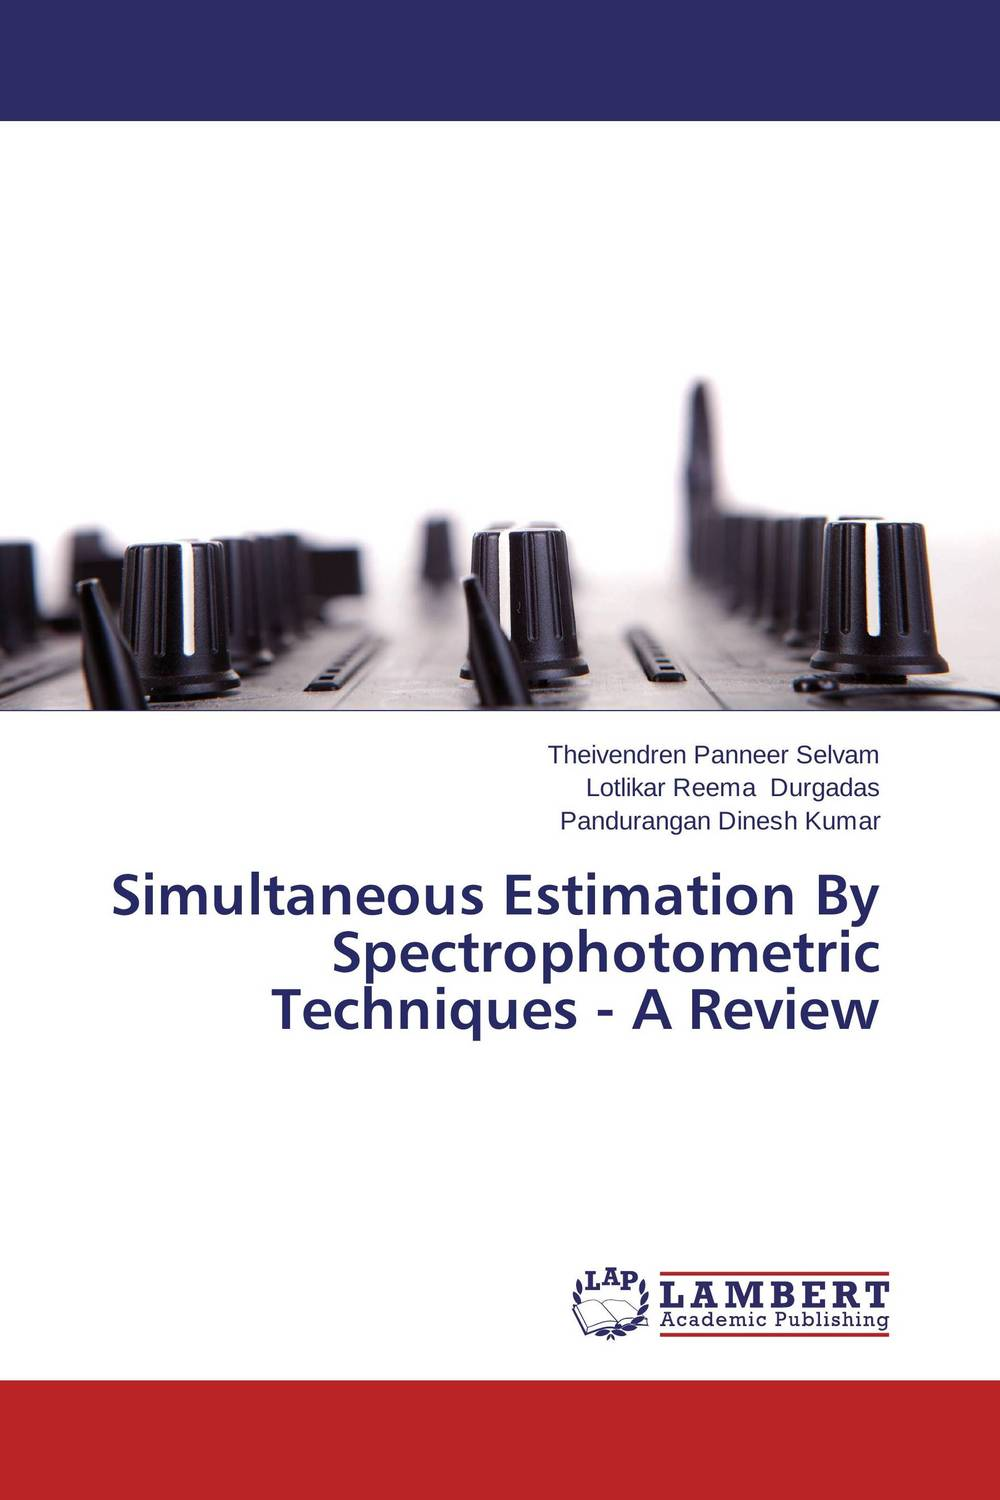 Simultaneous Estimation By Spectrophotometric Techniques - A Review these days are ours